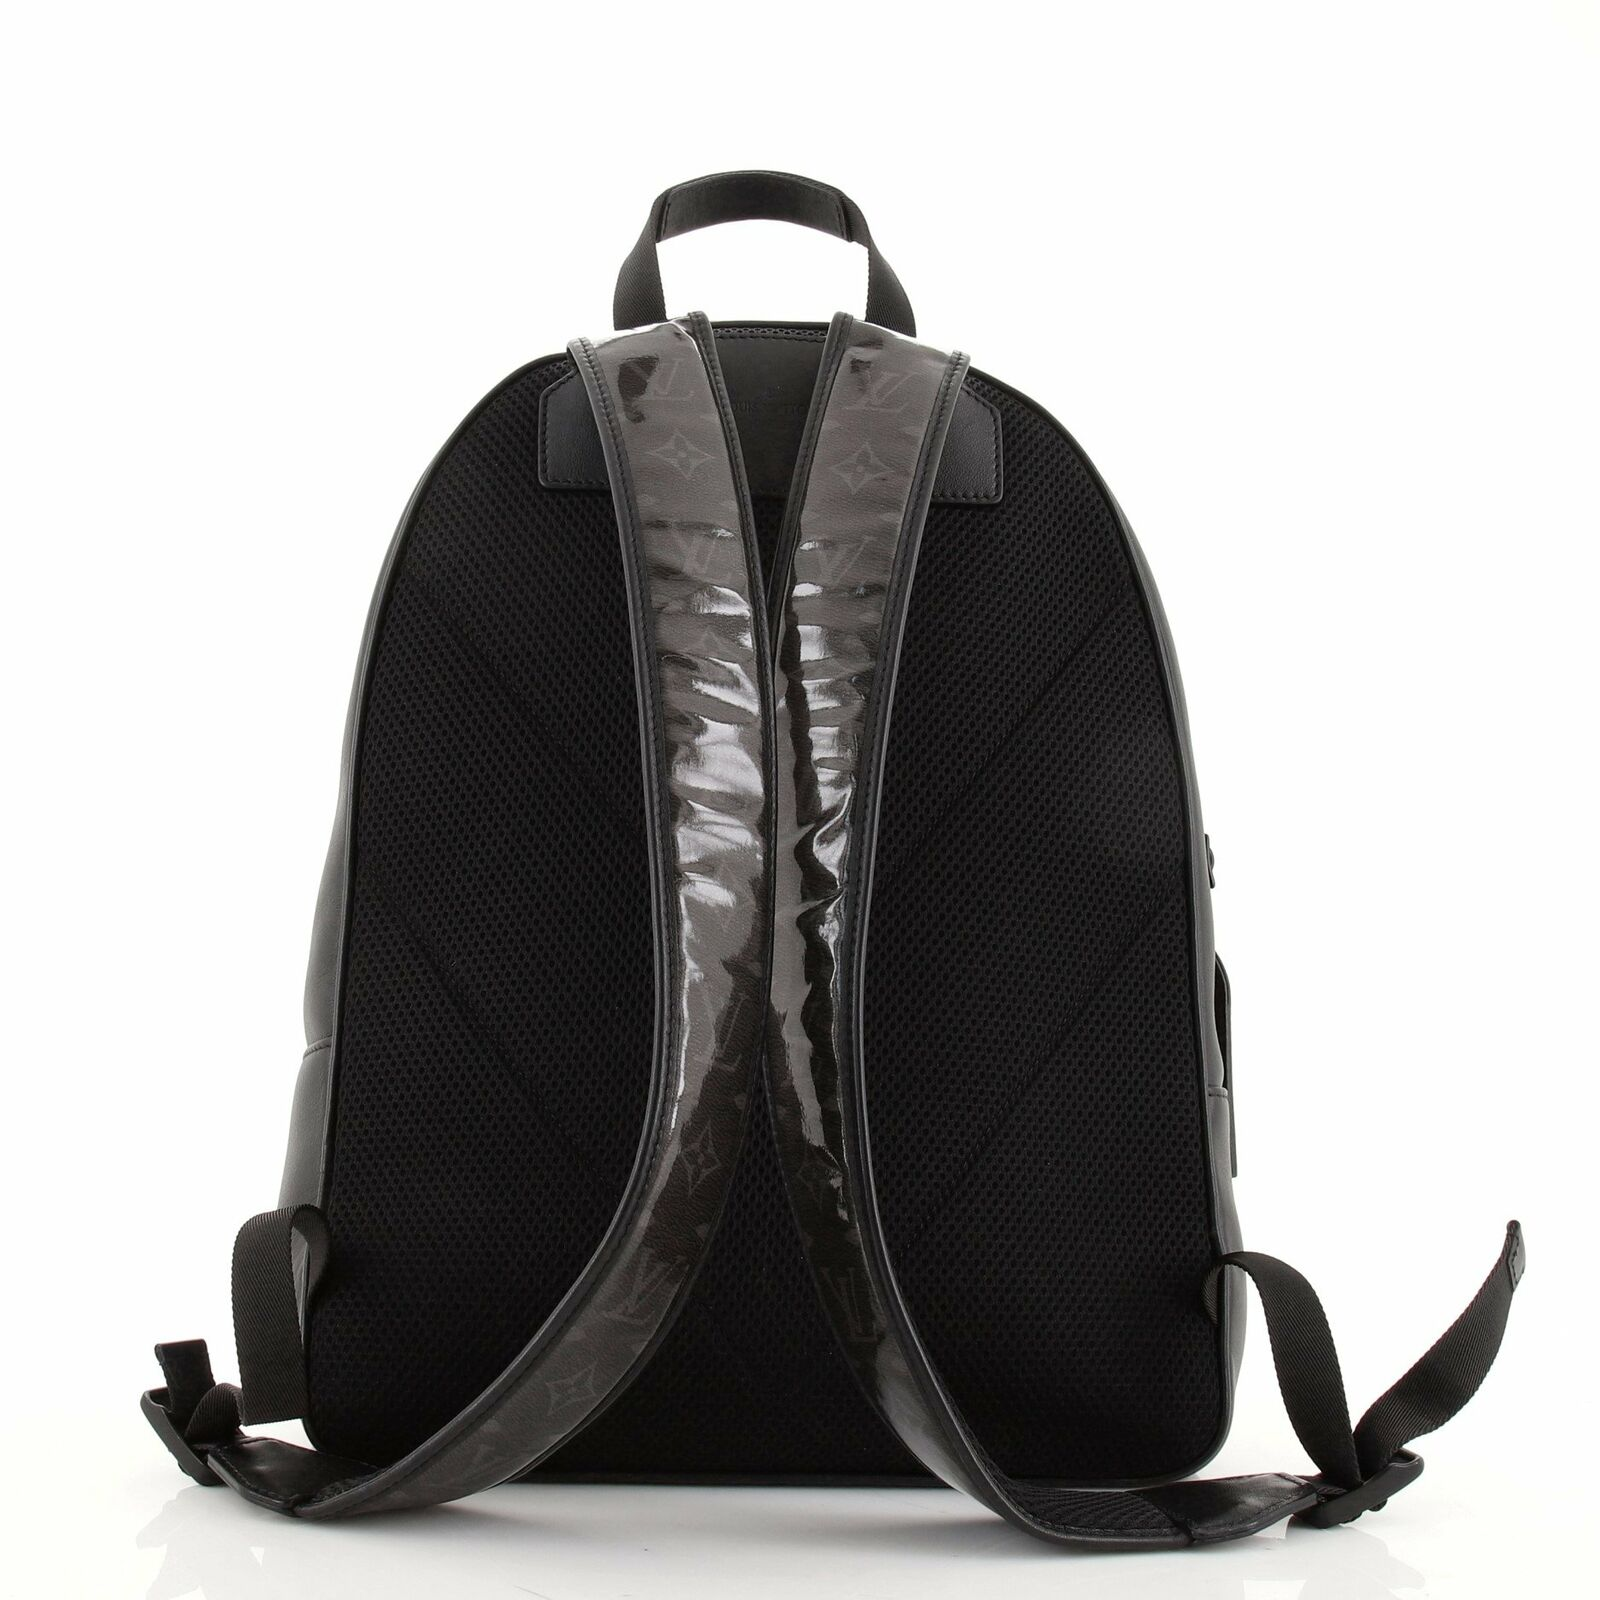 Louis Vuitton Backpack Dark Infinity Leather PM - image 3